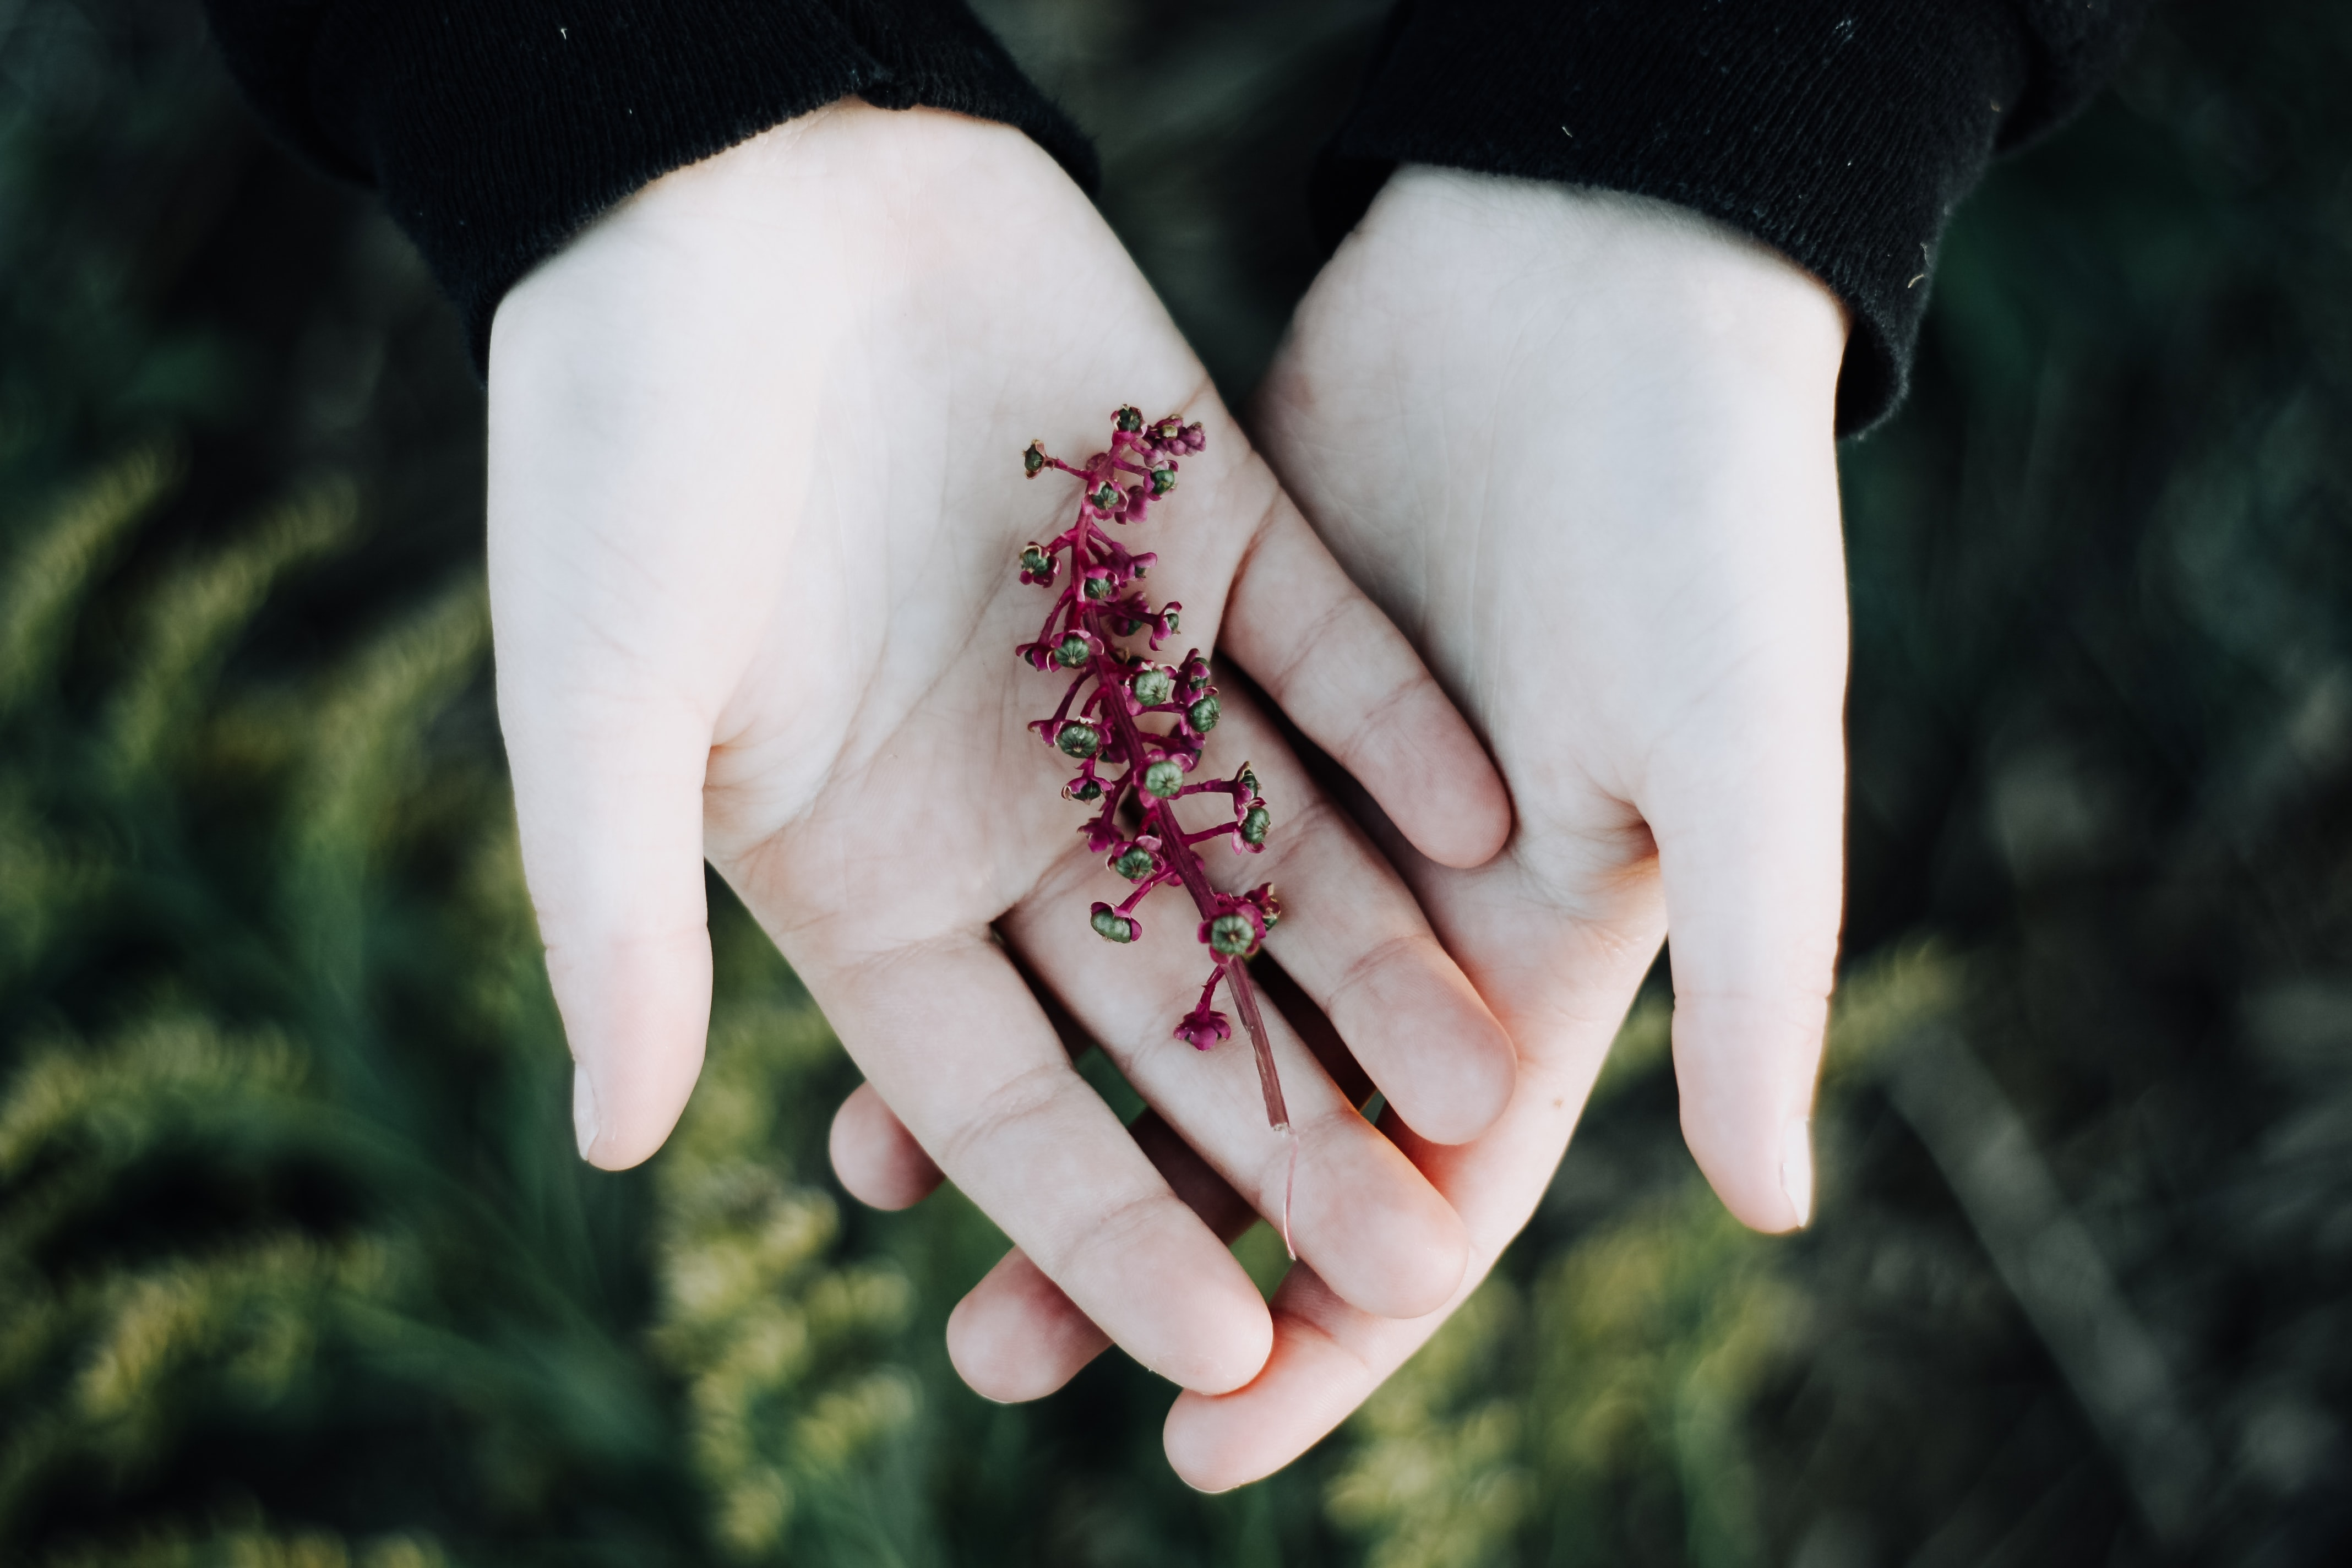 red petaled flower on person's palm